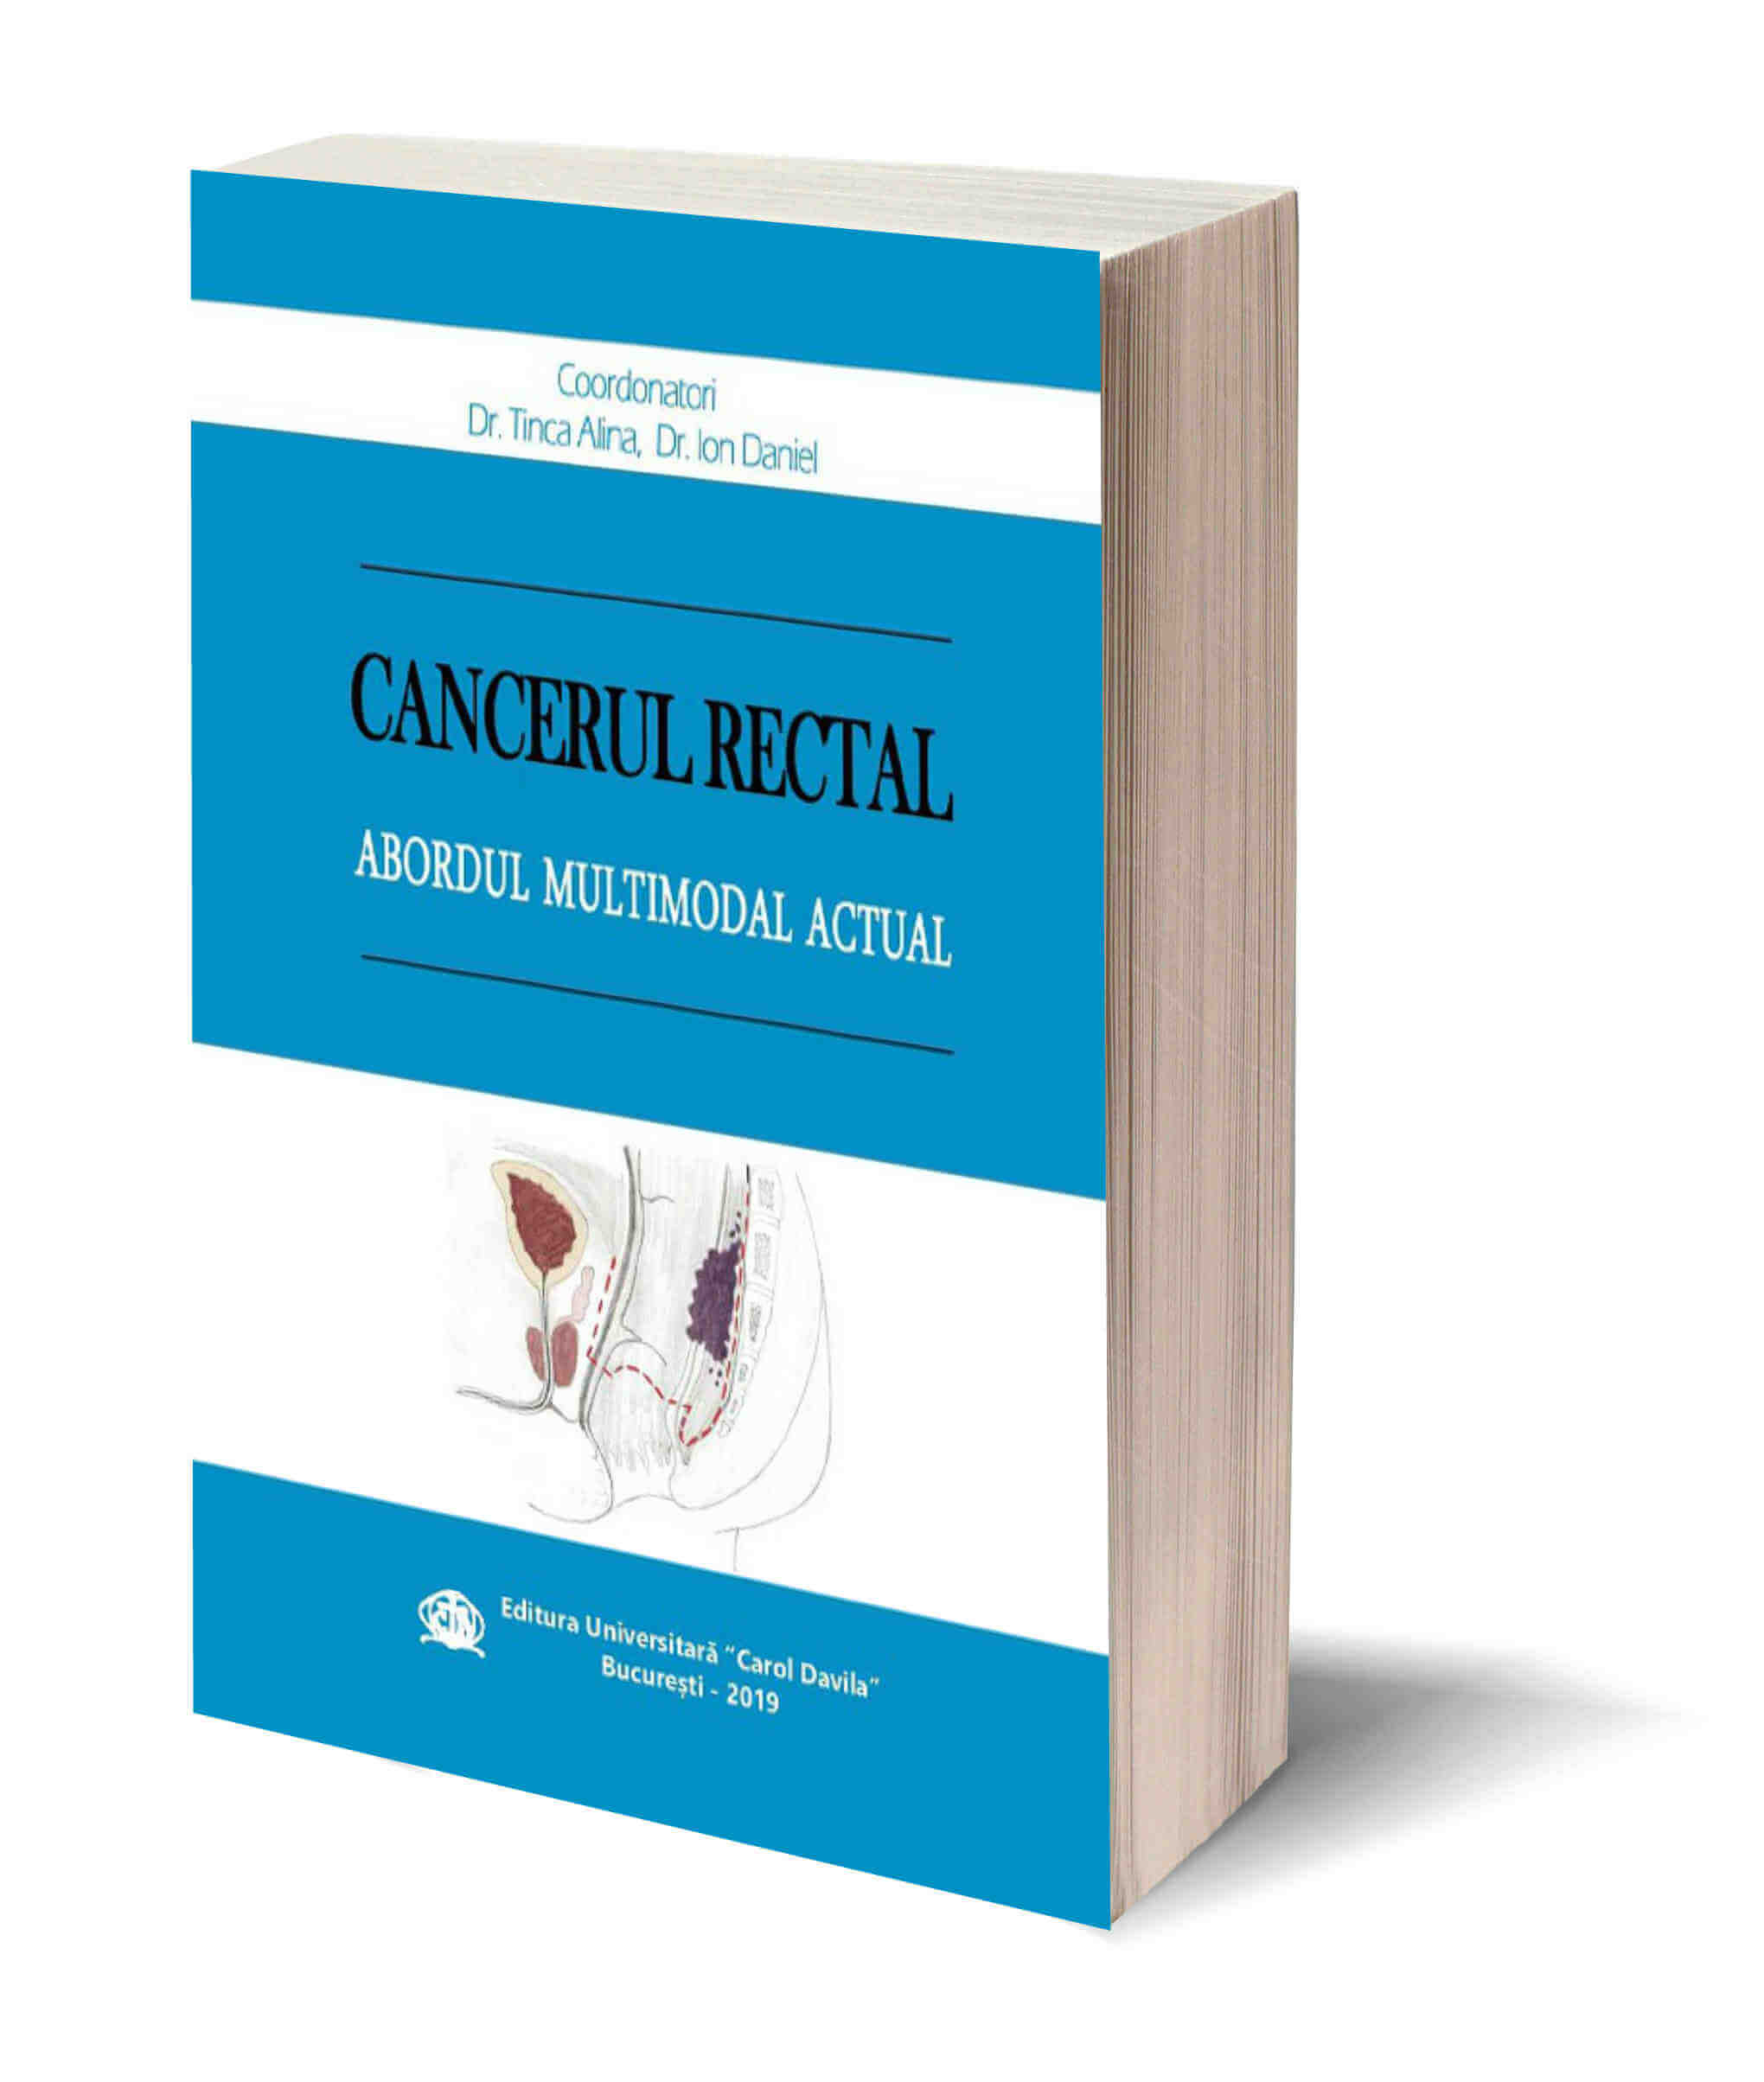 Cancerul rectal – Abordul Multimodal Actual